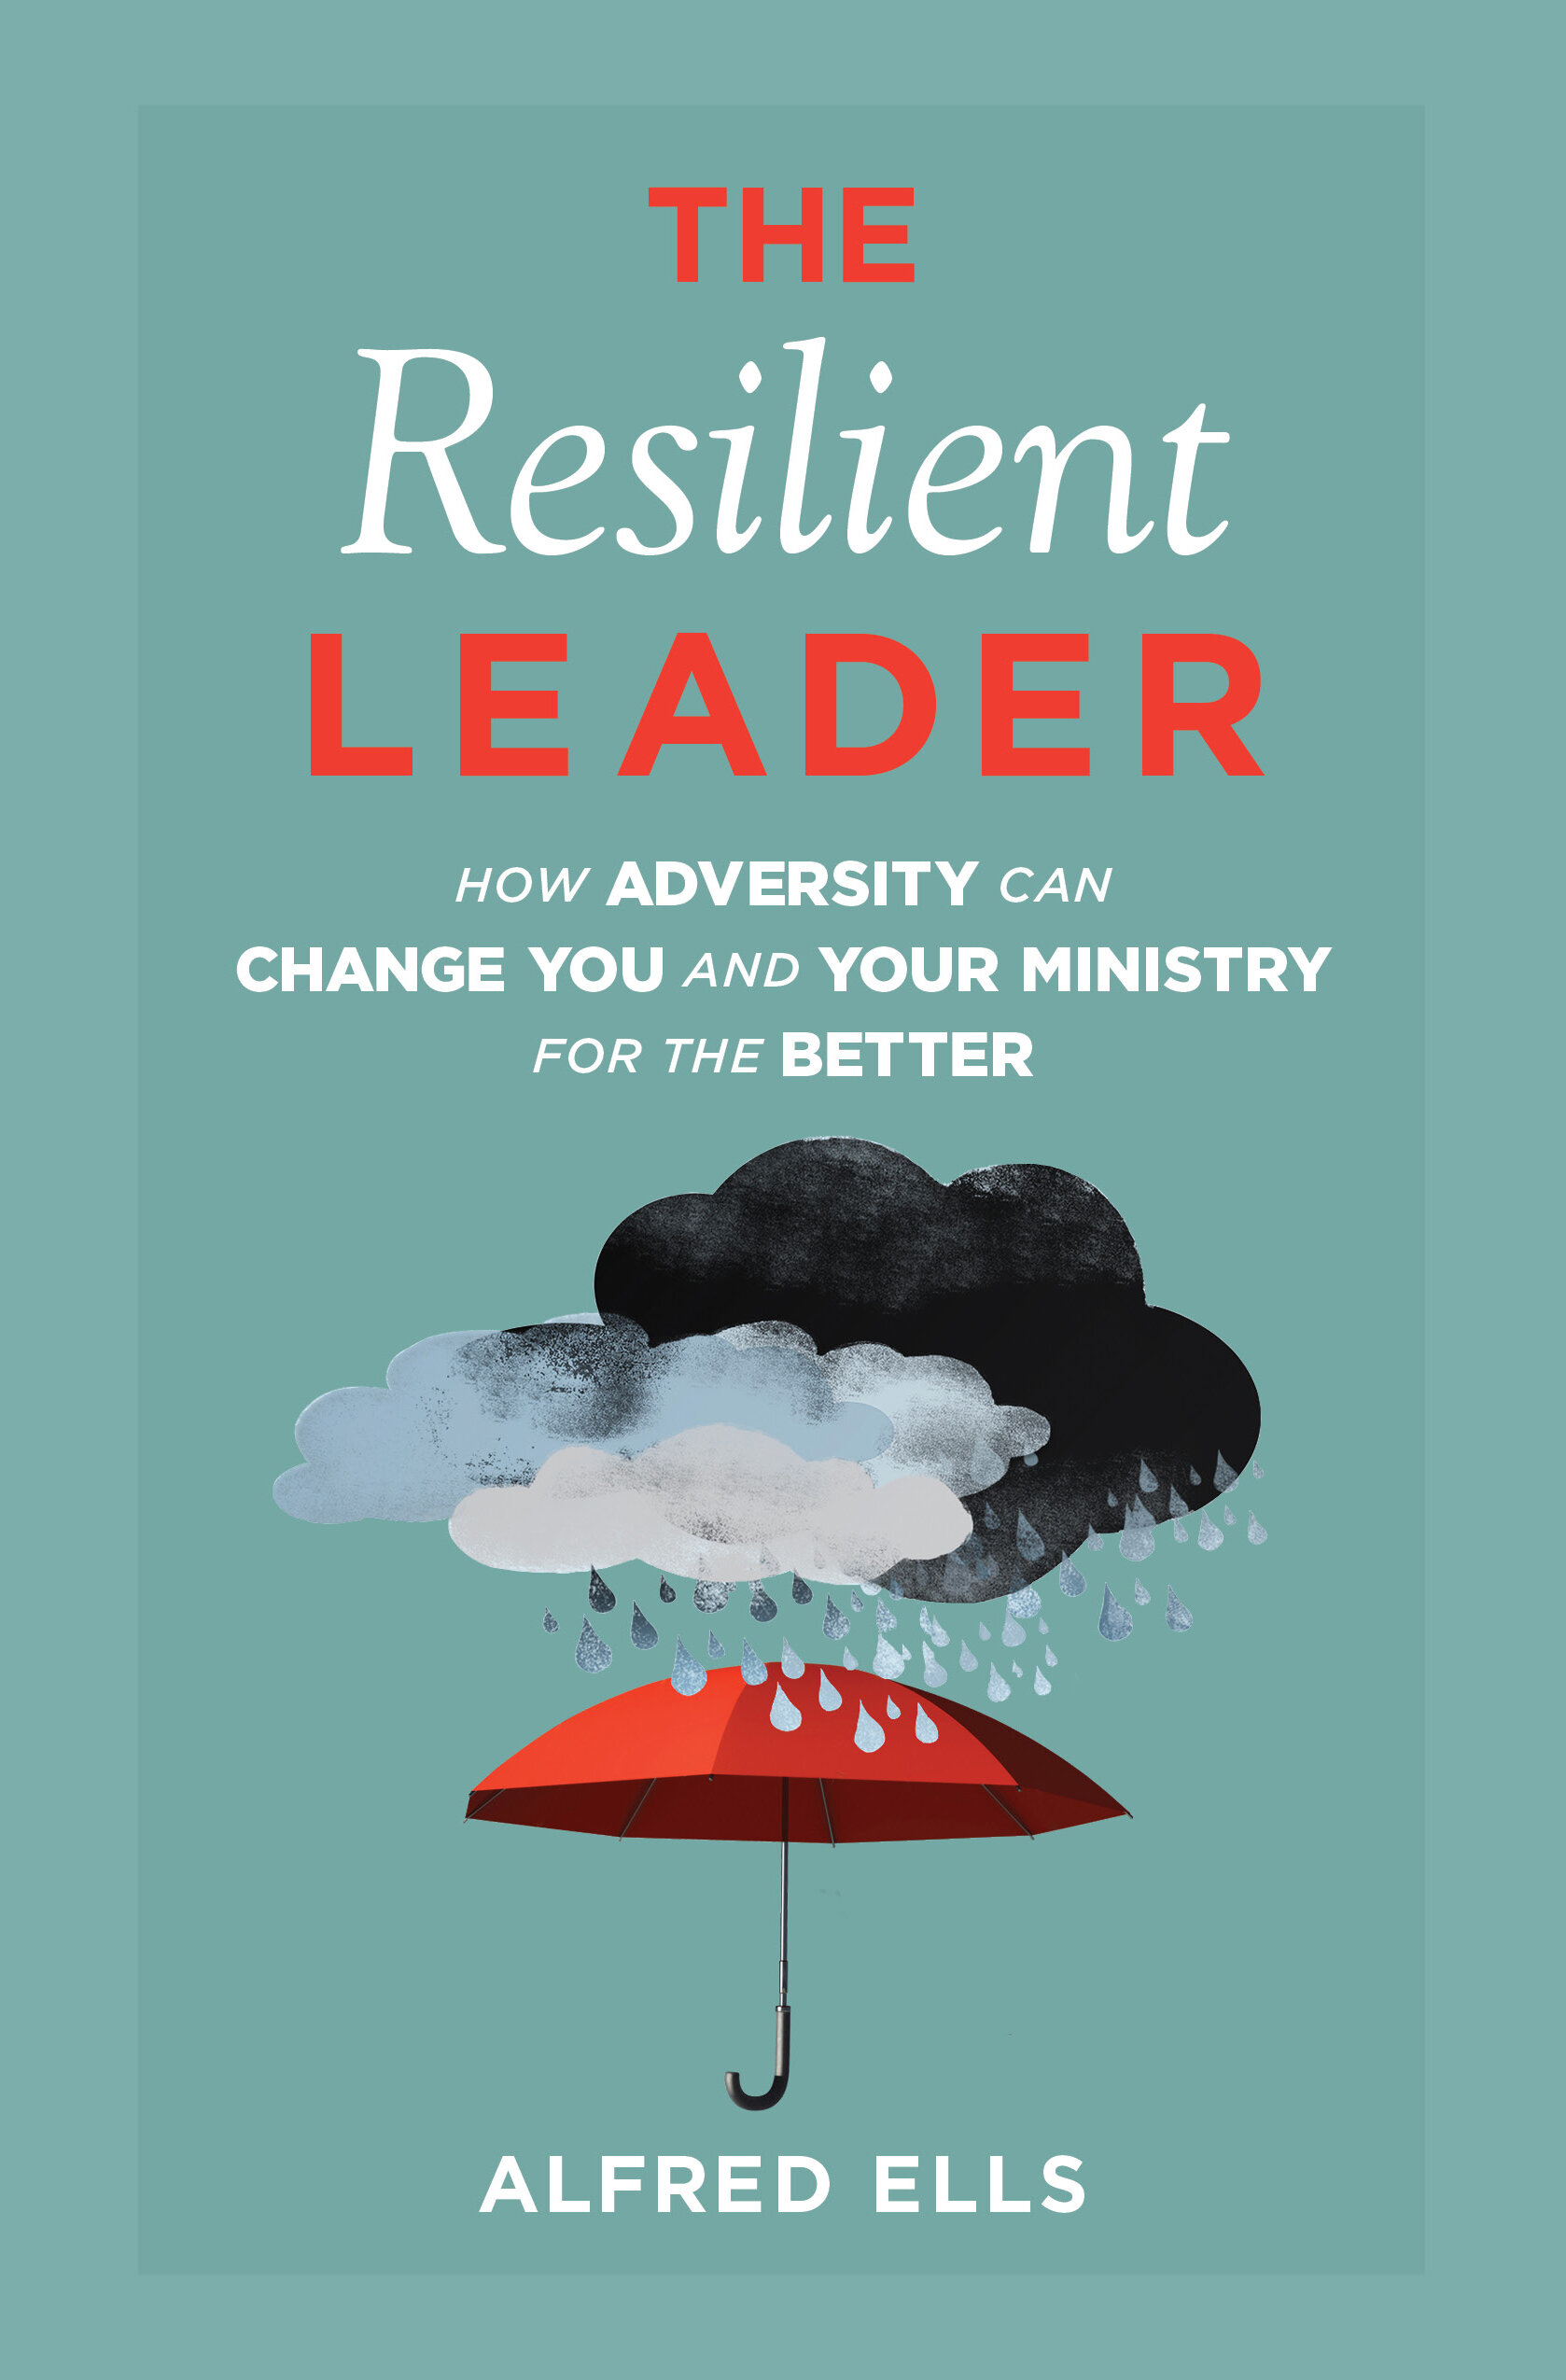 The Resilient Leader: How Adversity Can Change You and Your Ministry for the Better